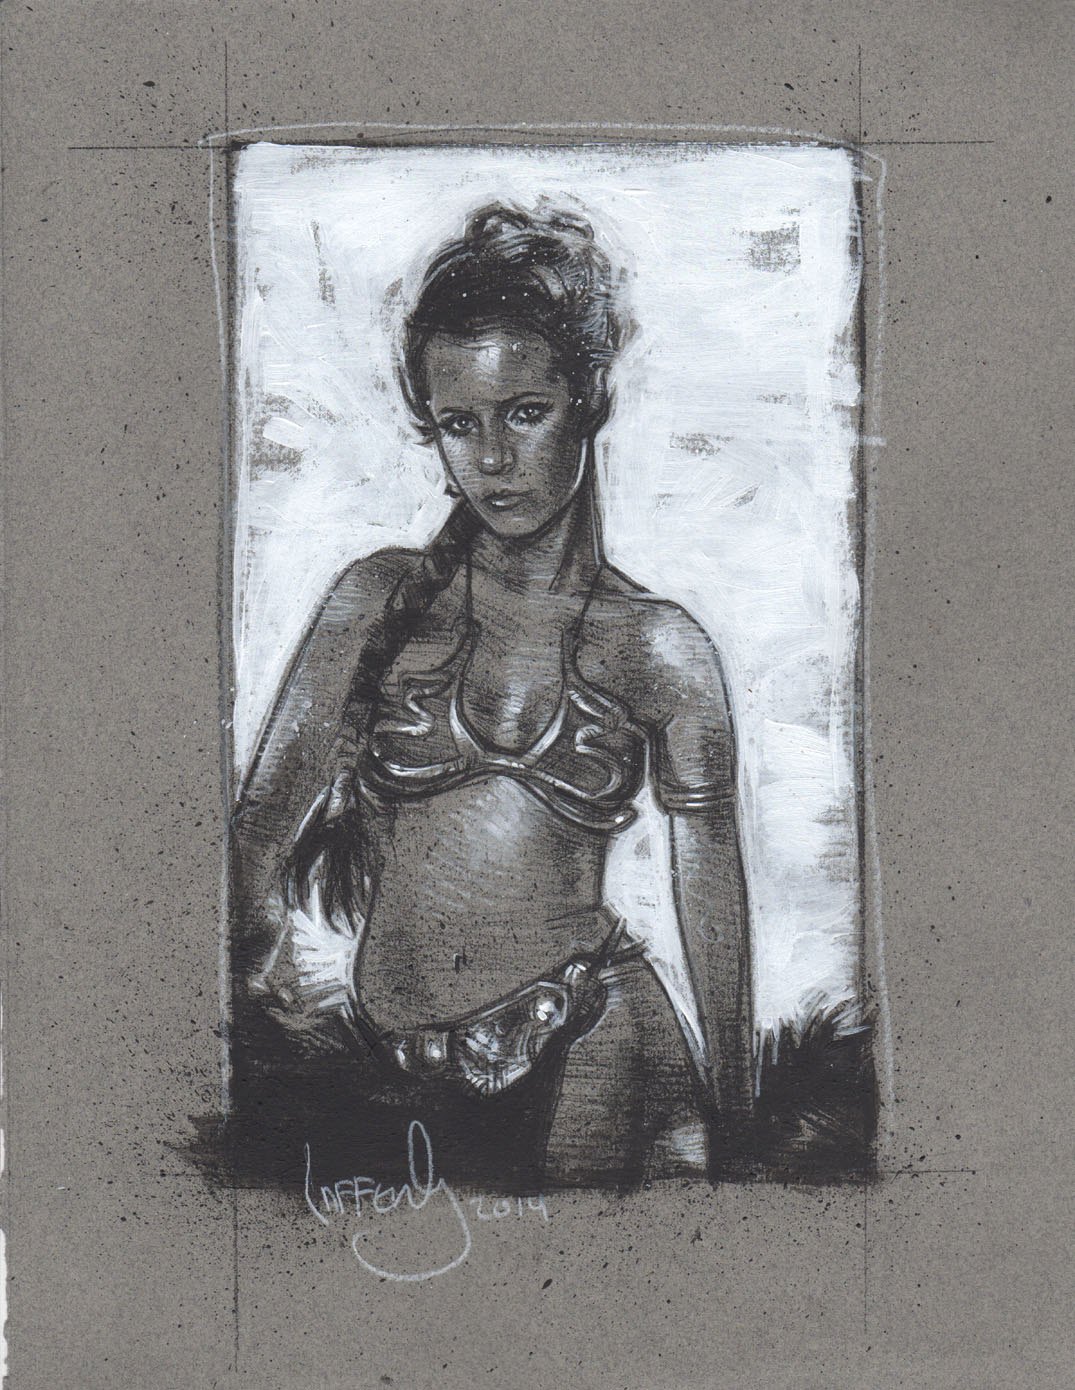 Carrie Fisher as Slave Leia, Artwork is Copyright © 2014 Jeff Lafferty